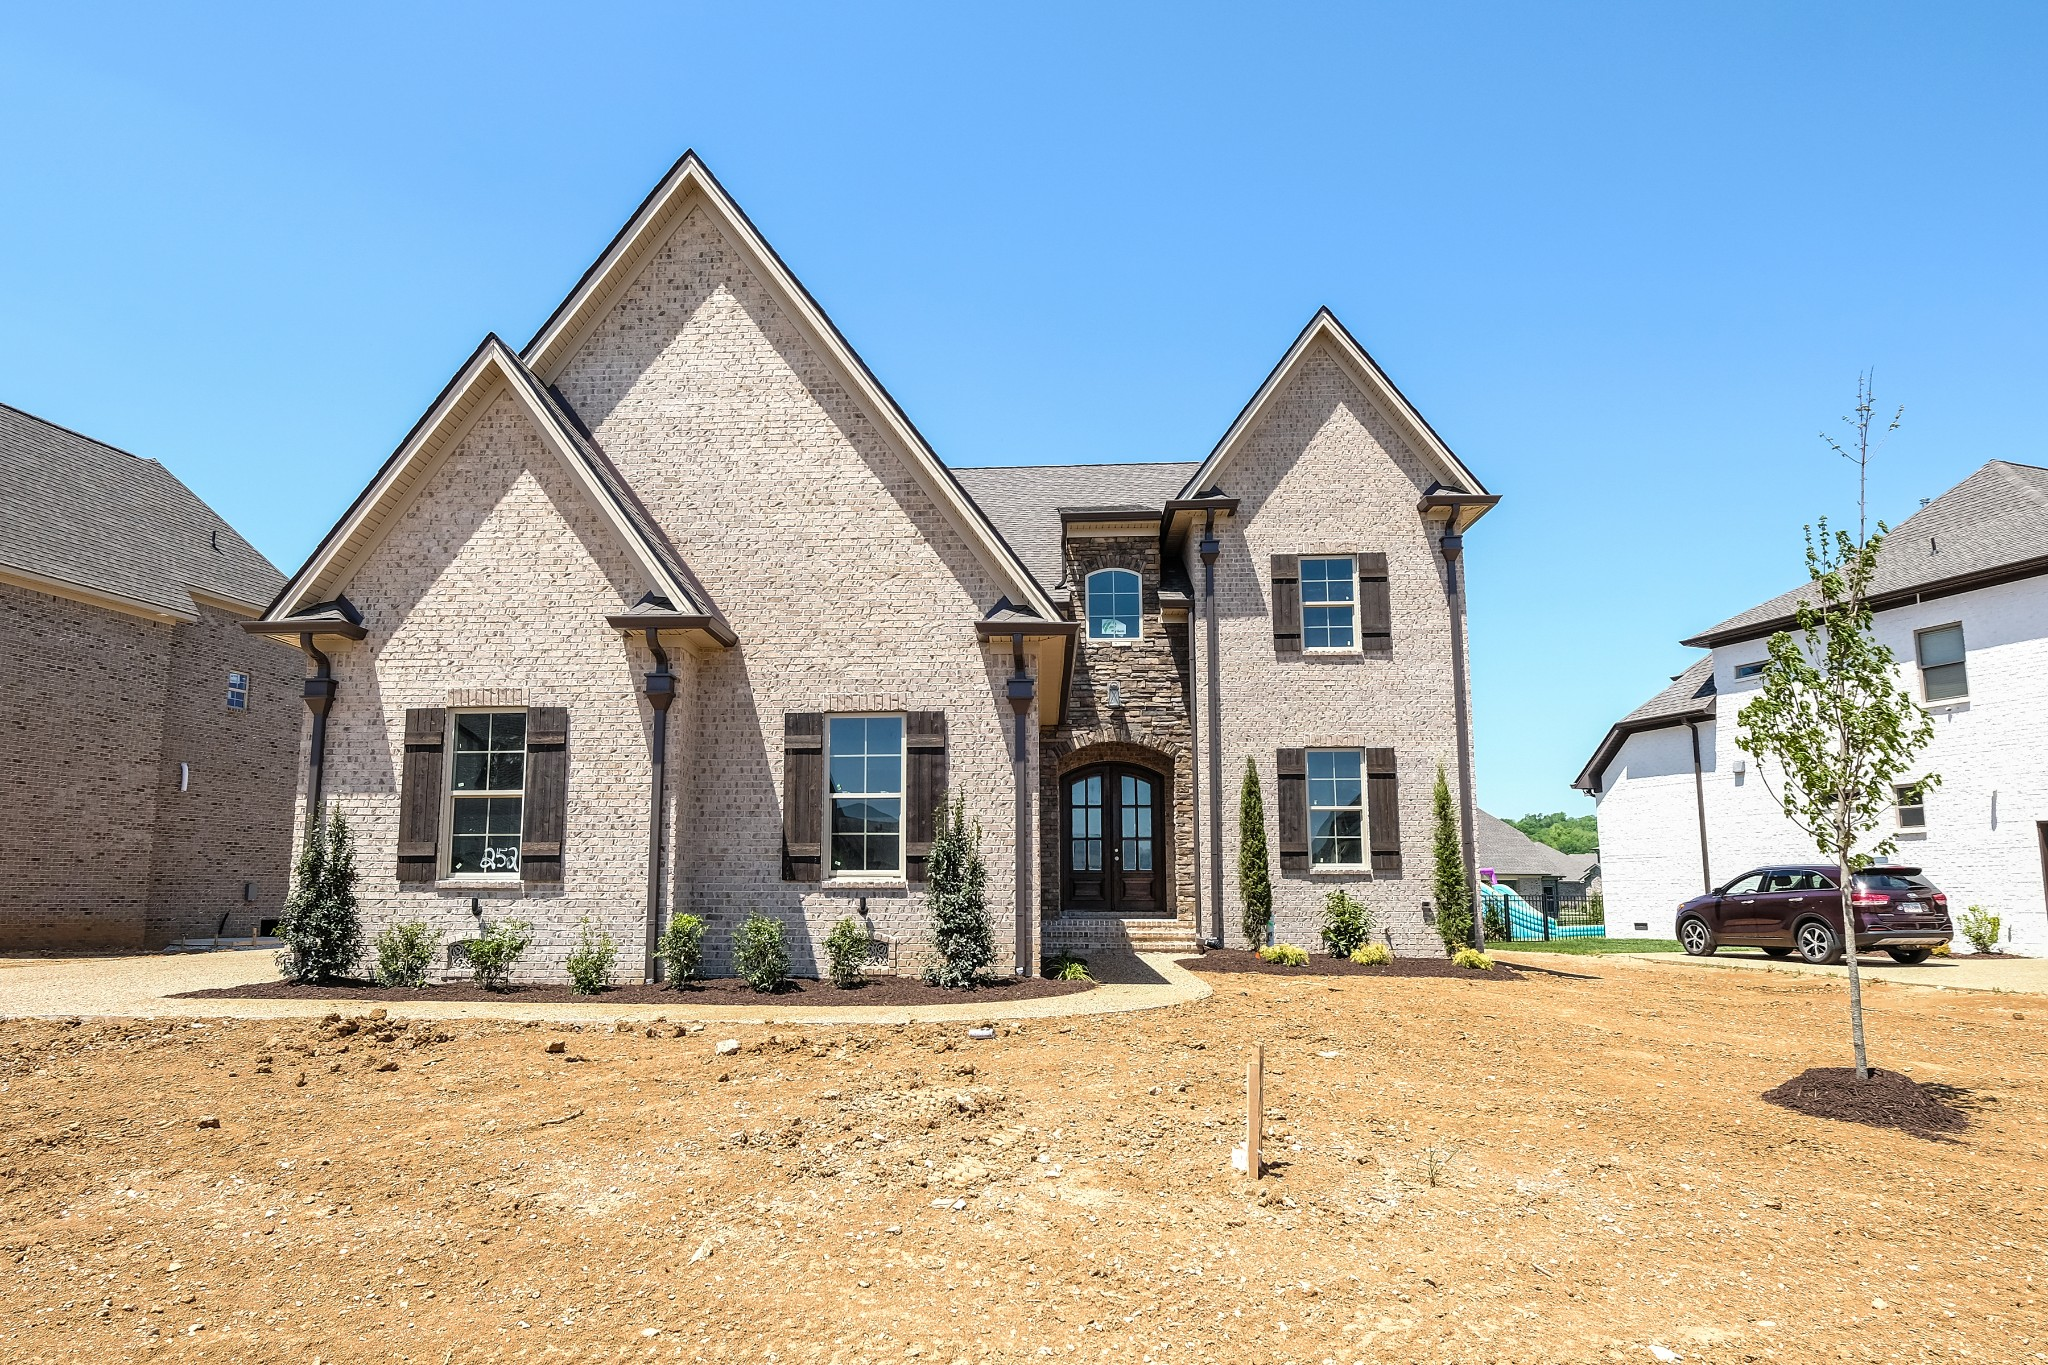 6026 Trout Ln (Lot 252), Spring Hill, Tennessee